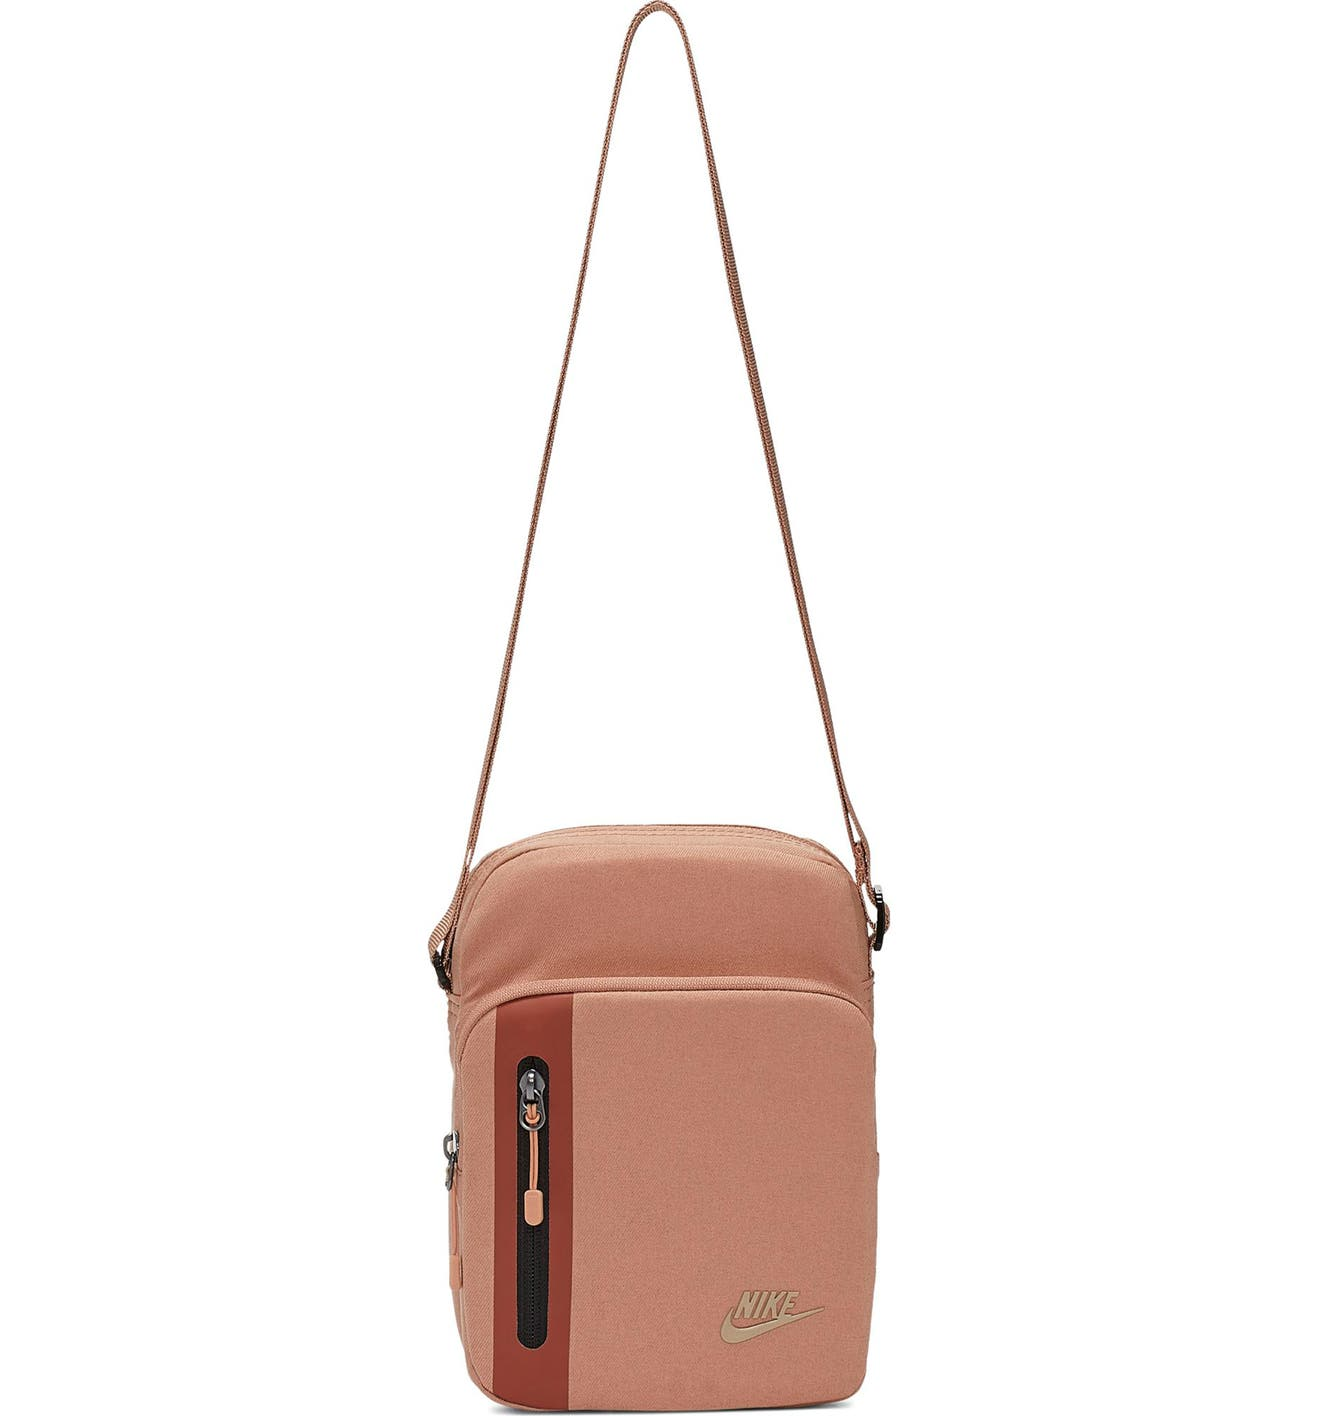 on sale ad278 5312c Nike Tech Small Items Bag   Nordstrom